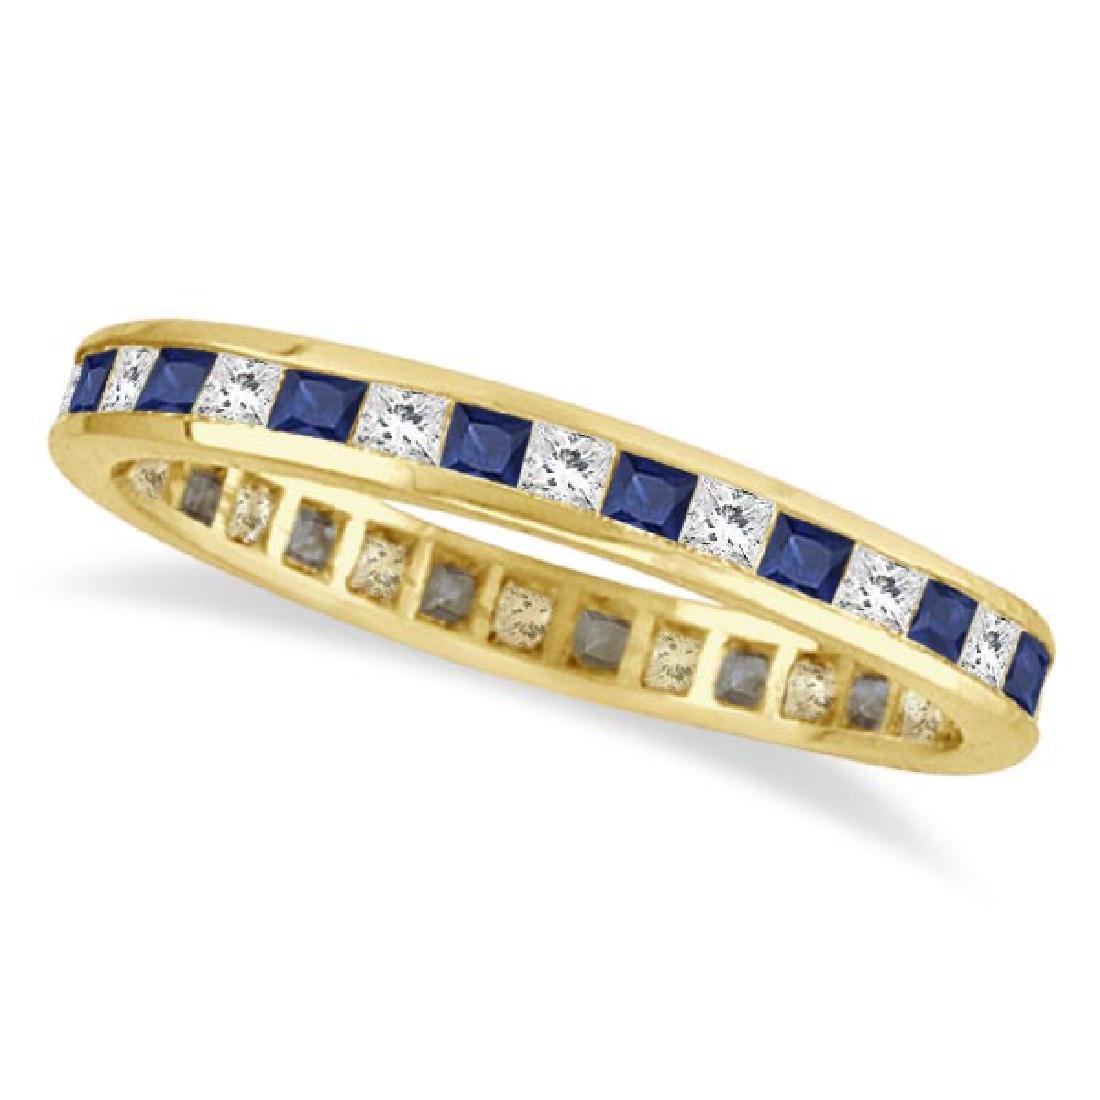 Princess-Cut Sapphire and Diamond Eternity Ring 14k Yel